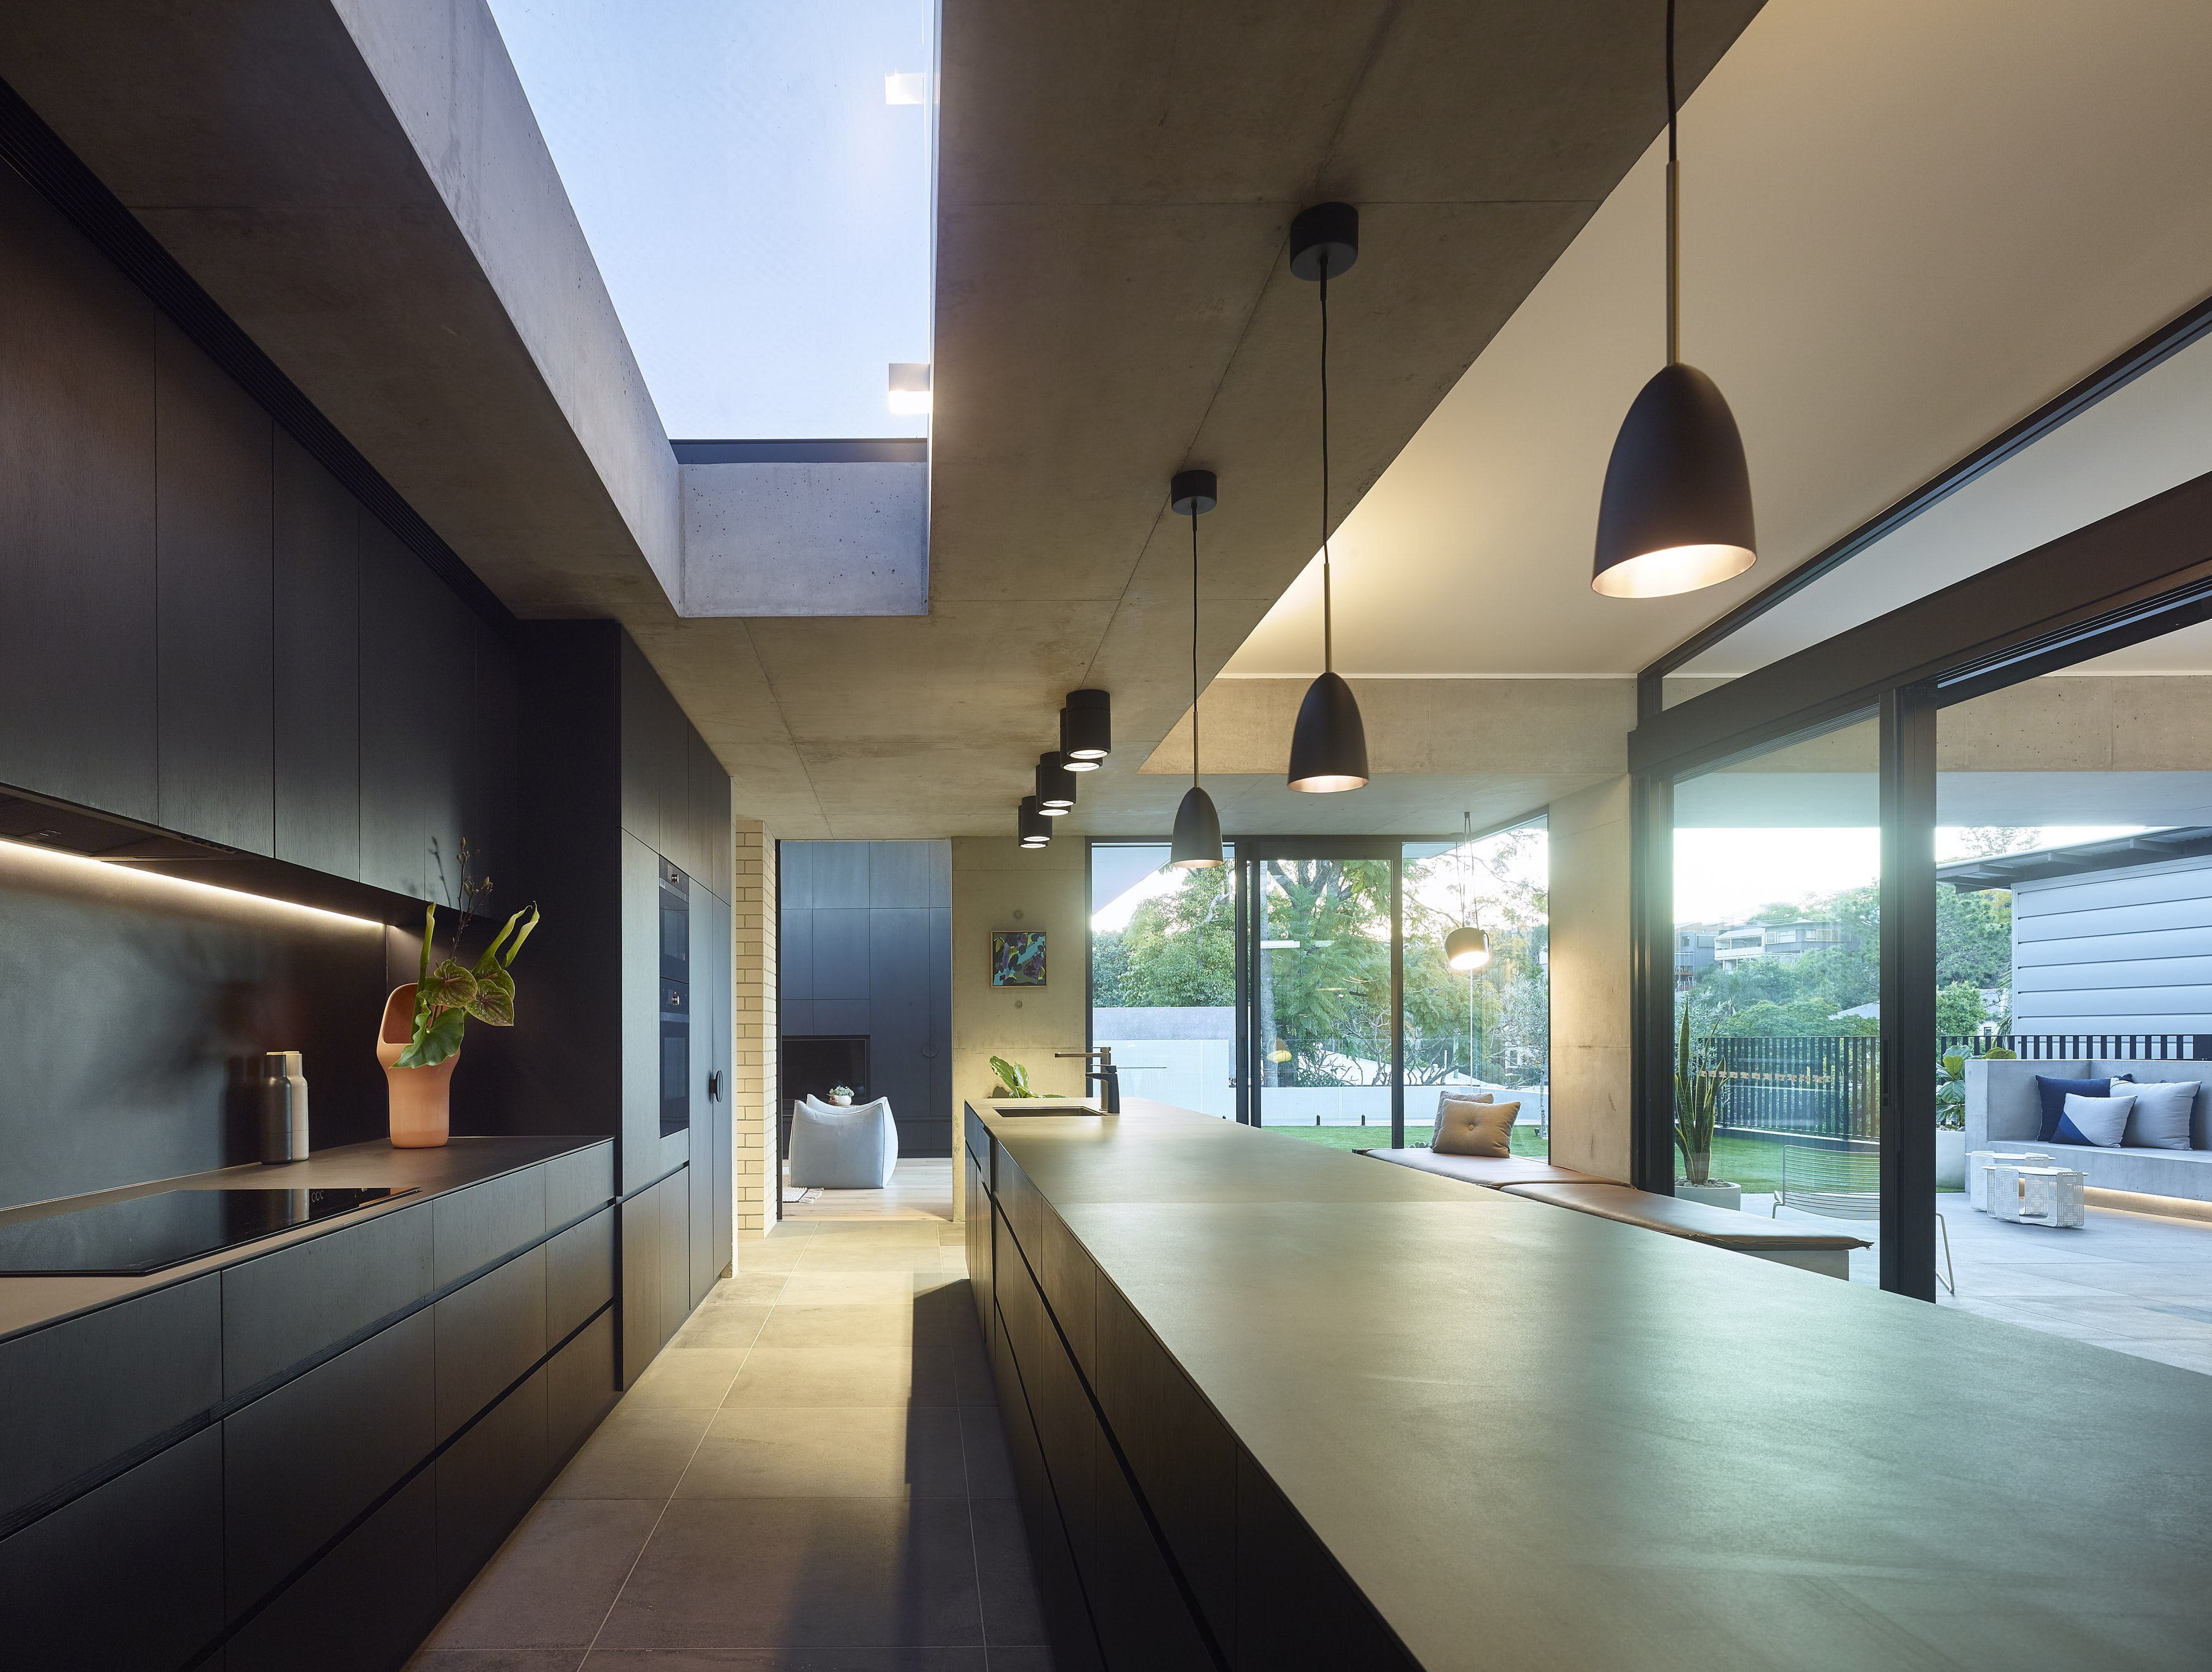 Gallery Of Sorrel Street By Shaun Lockyer Architects Local Australian Design And Interiors Paddington, Qld Image 22 Min